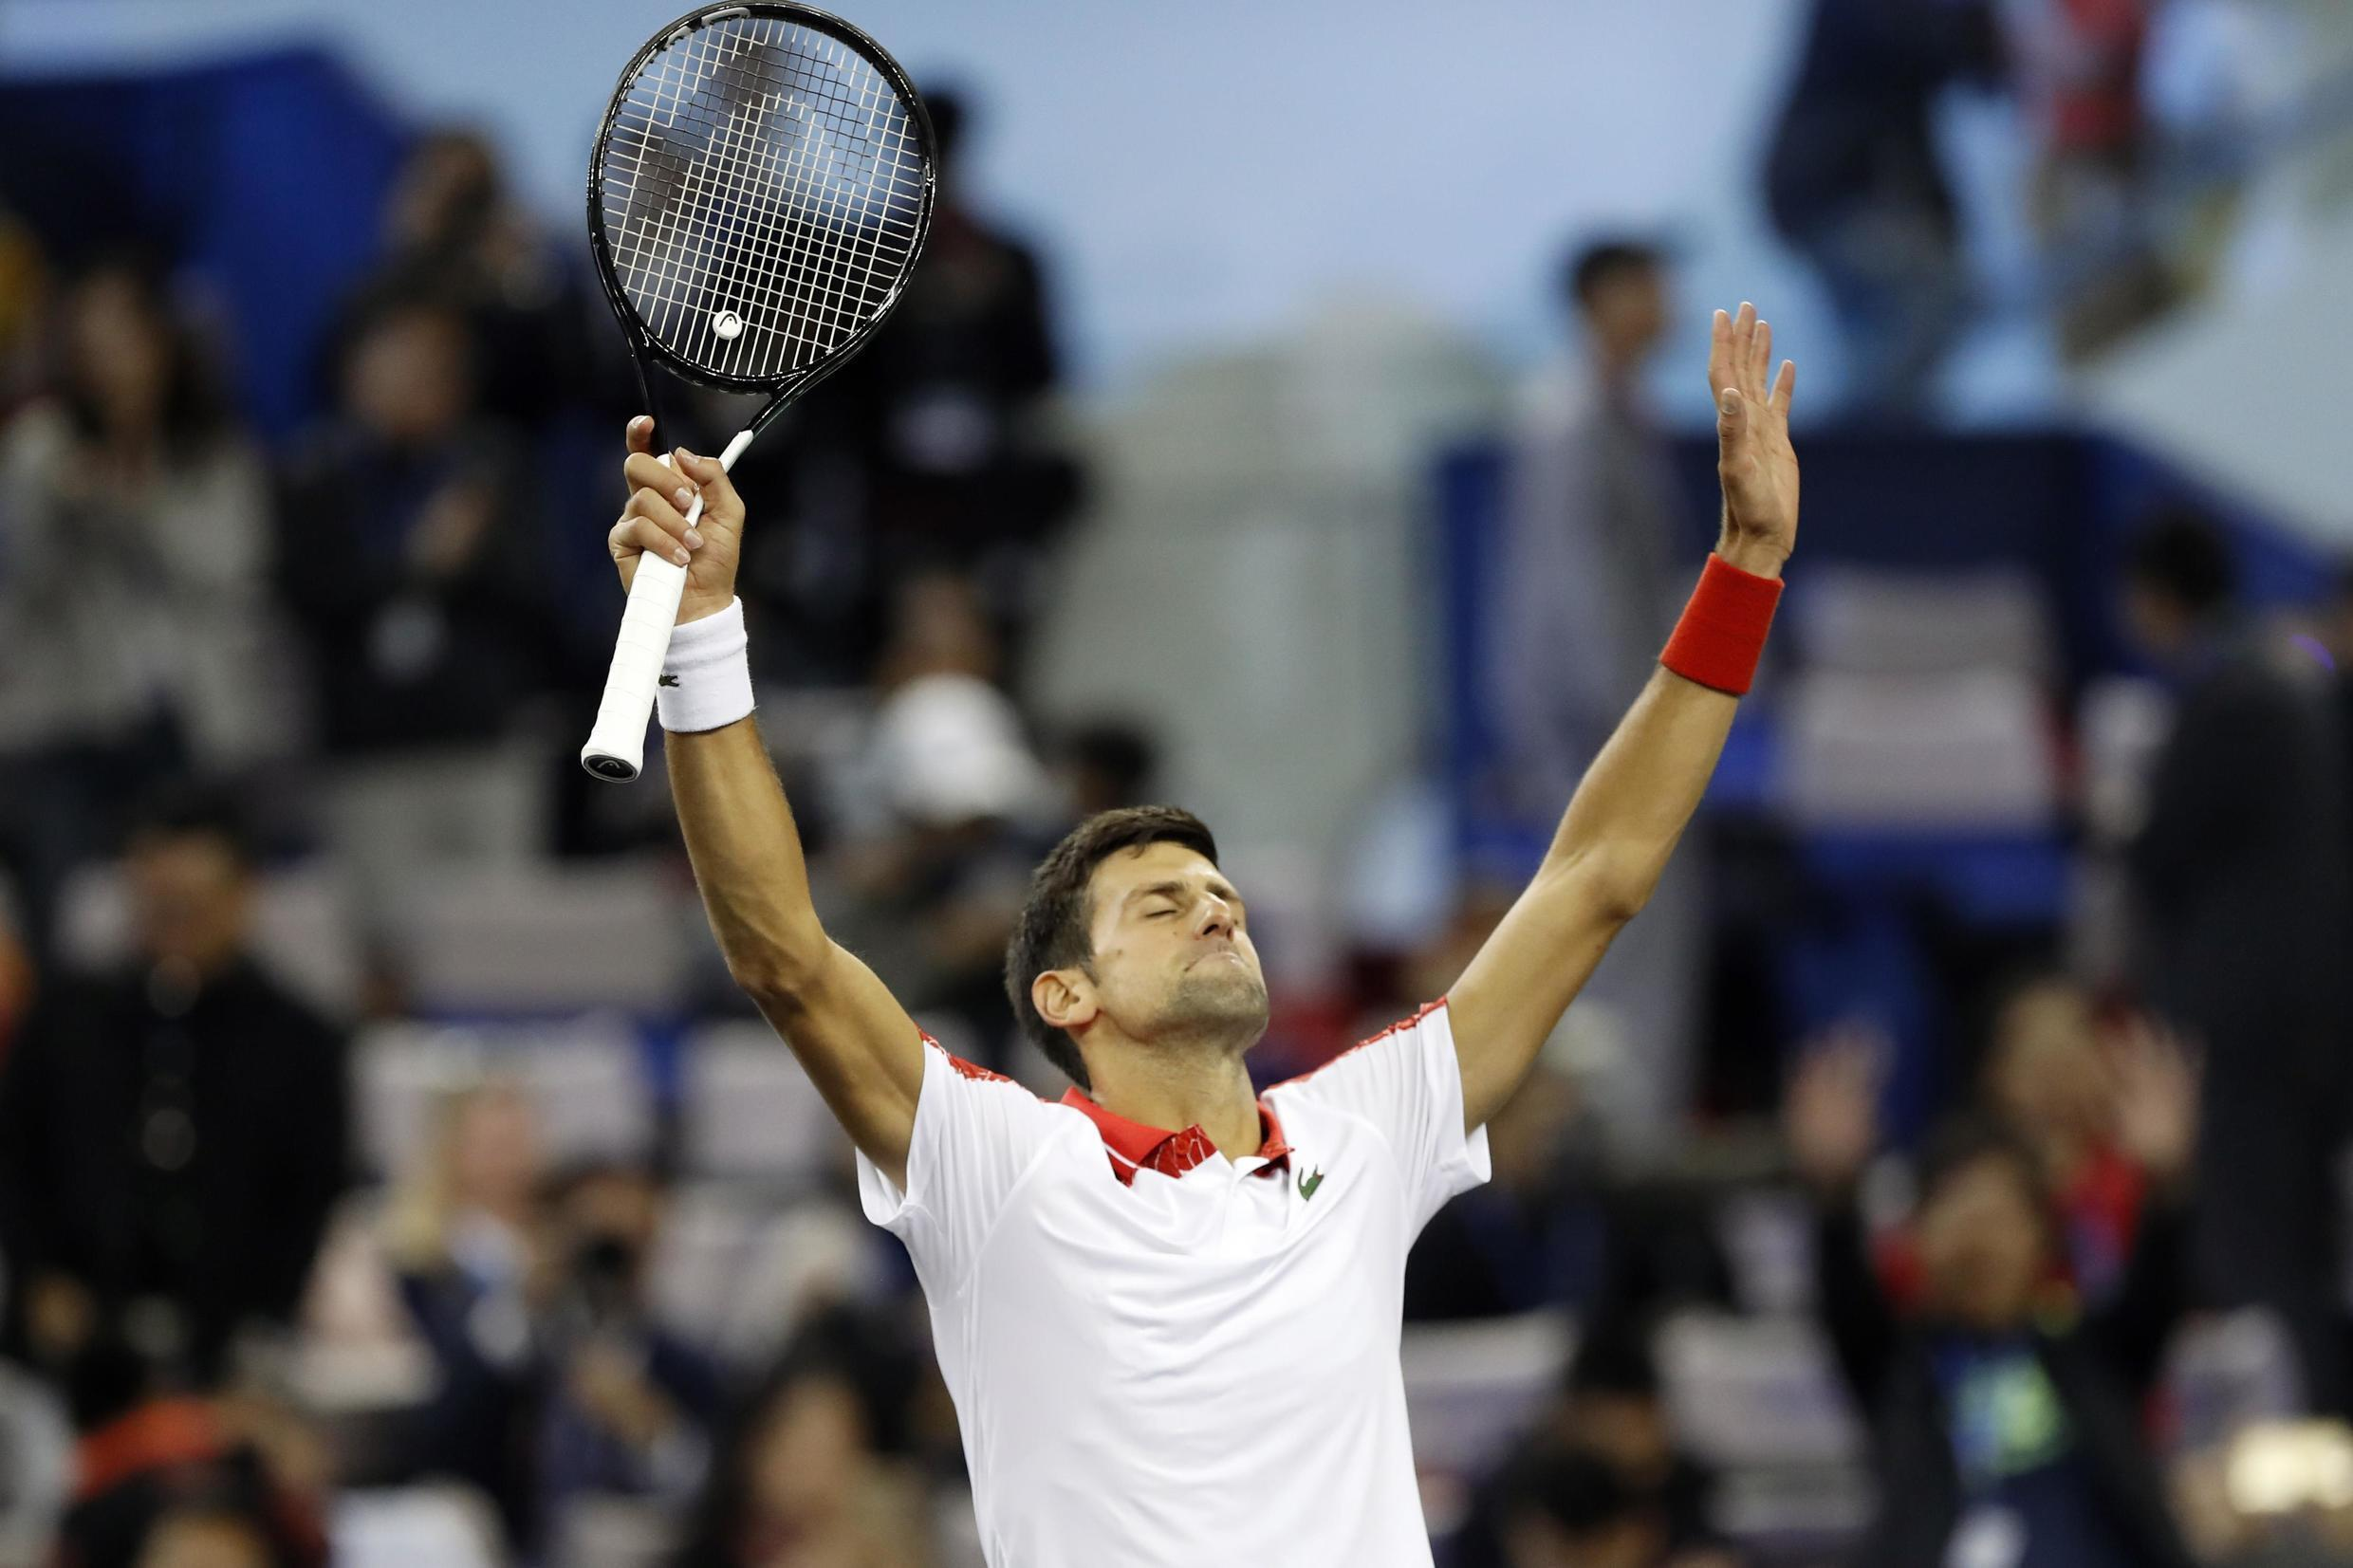 Novak Djokovic will rise to world number two as a result of his performances in Shanghai.